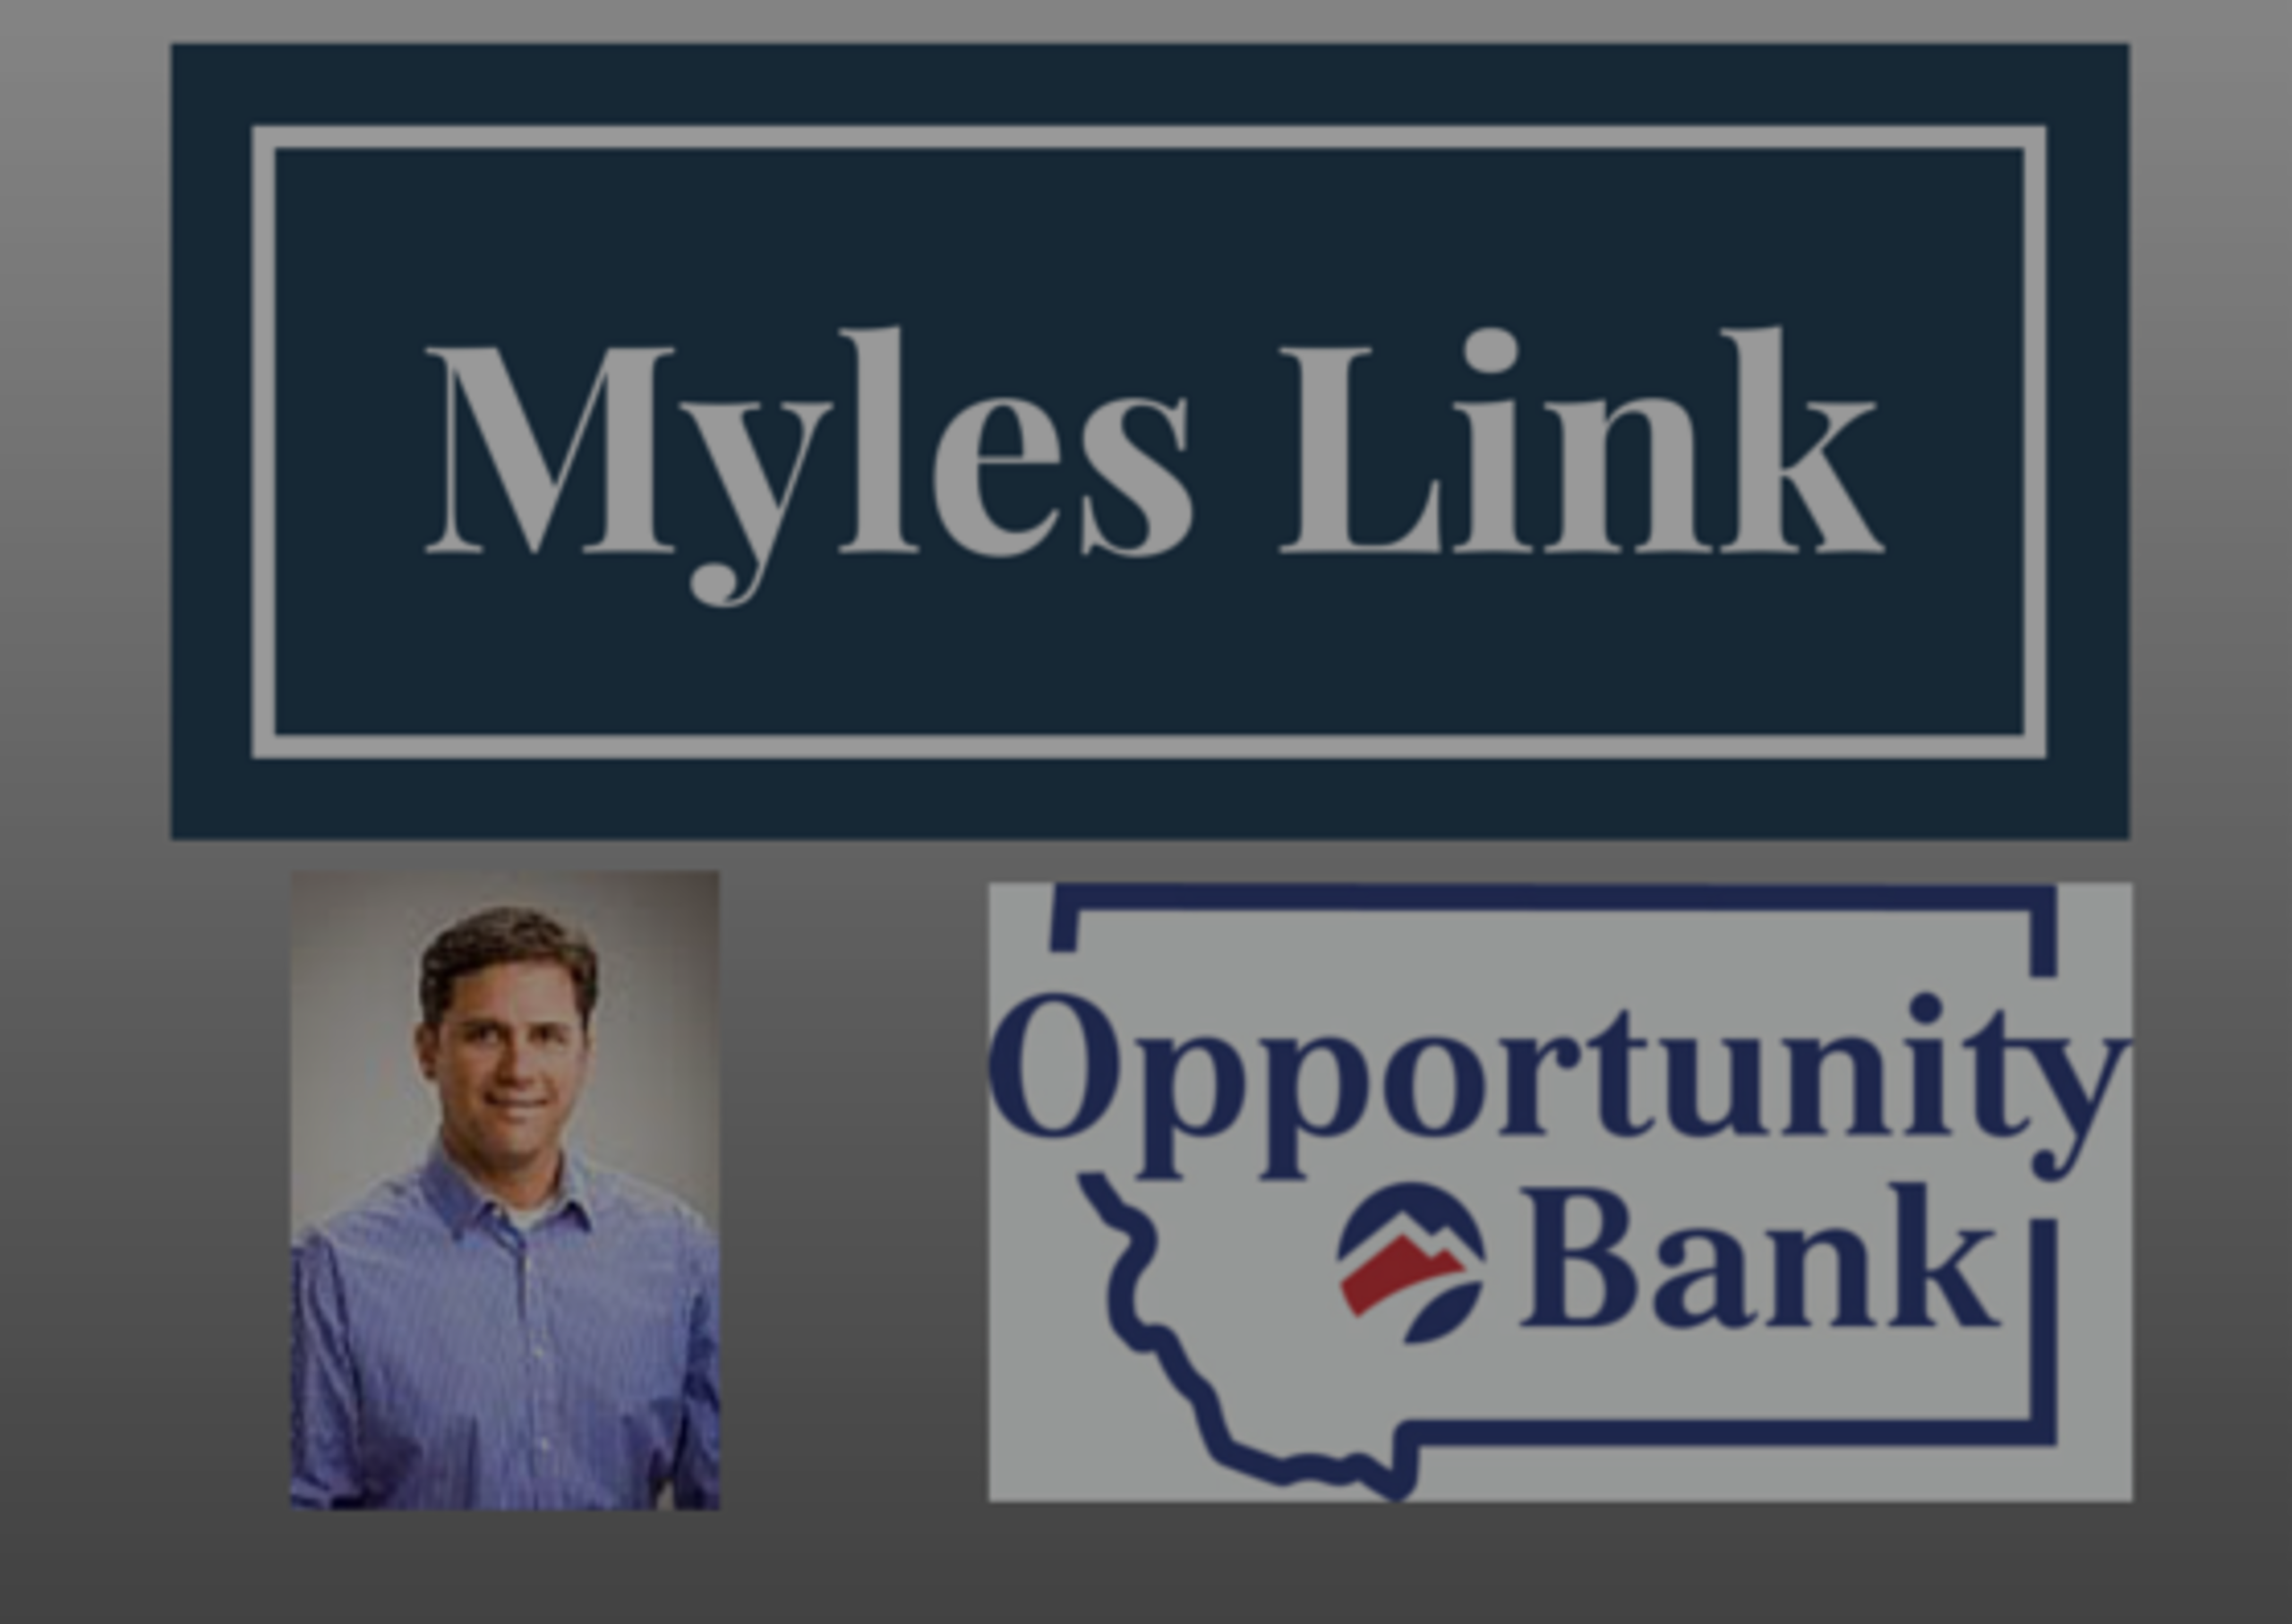 Myles Link – The Great Lender!